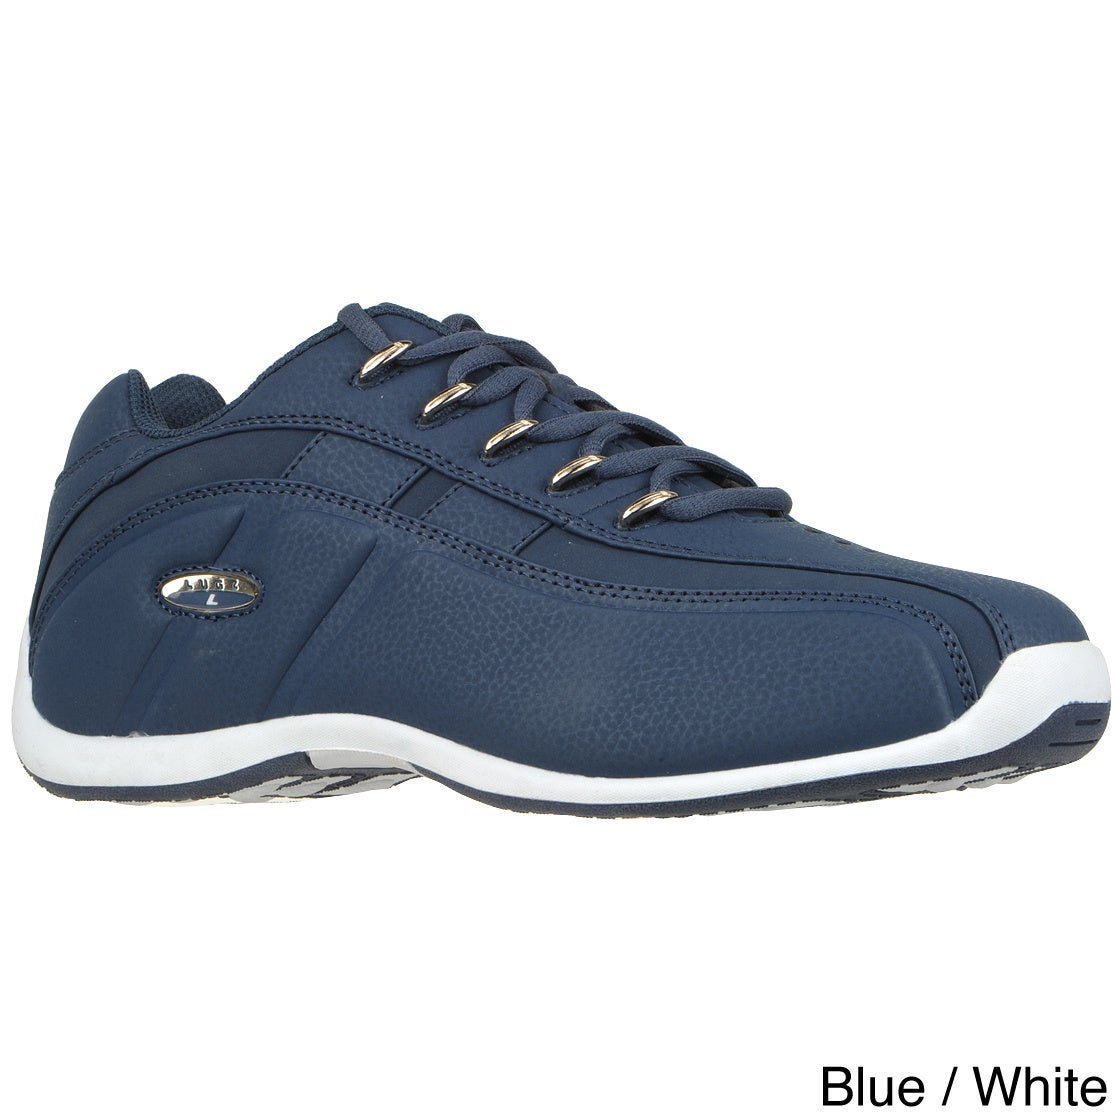 Lugz Men's 'Tempest Evolution' Athletic Sneakers